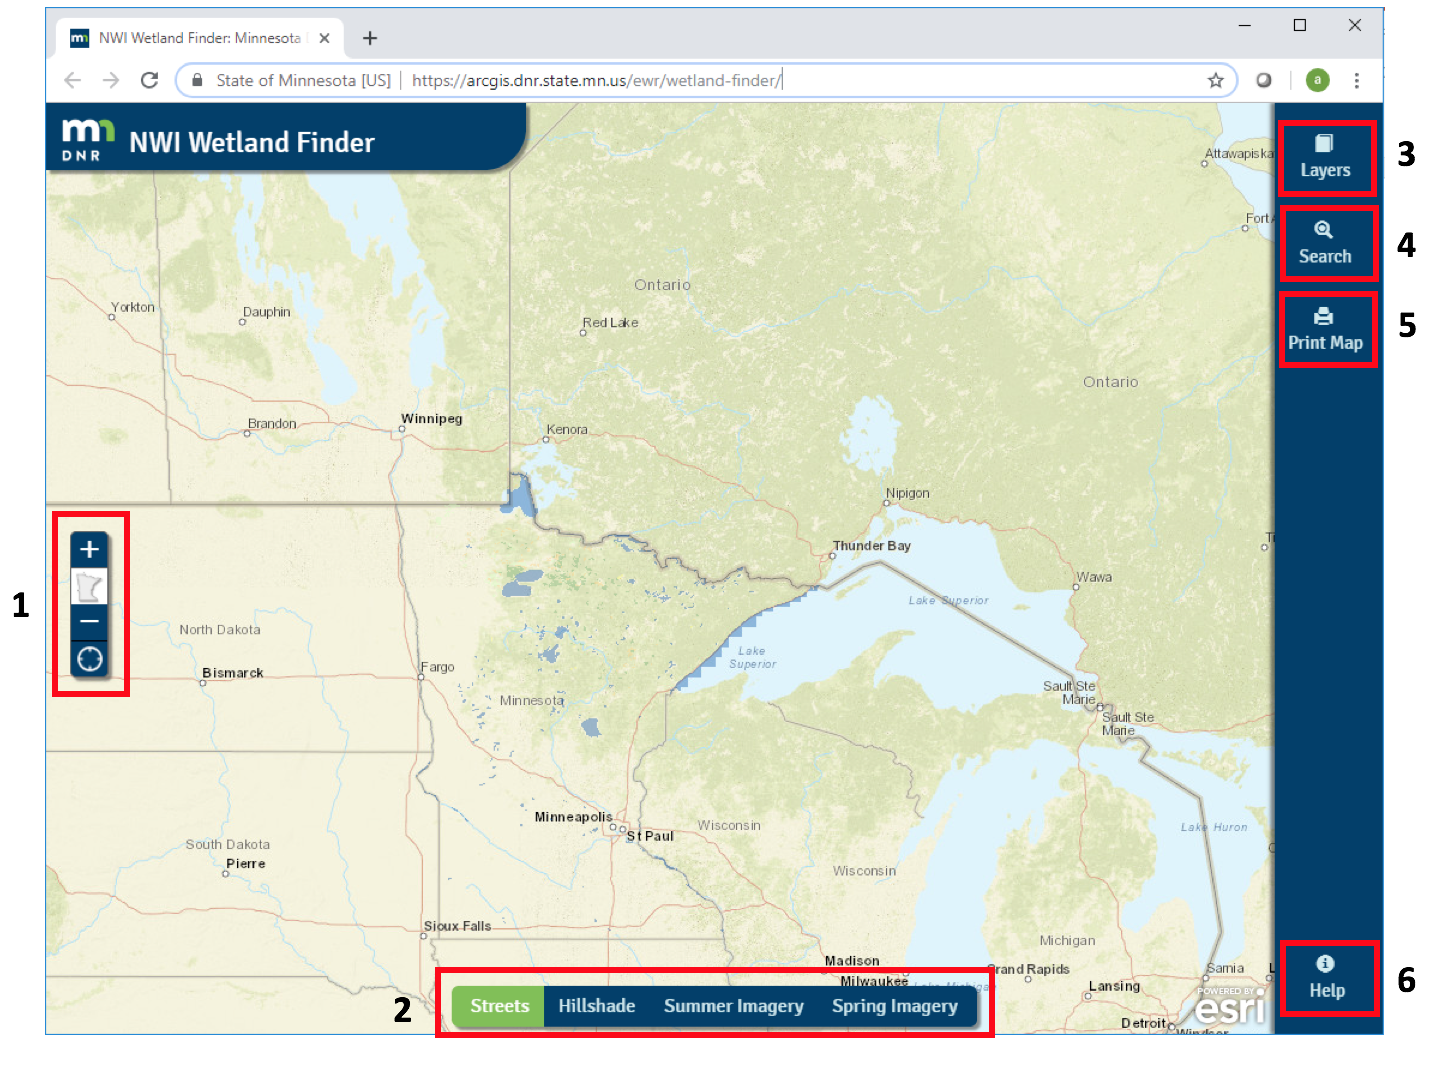 Screen capture of Wetland Finder with tools identified and numbered for map key reference